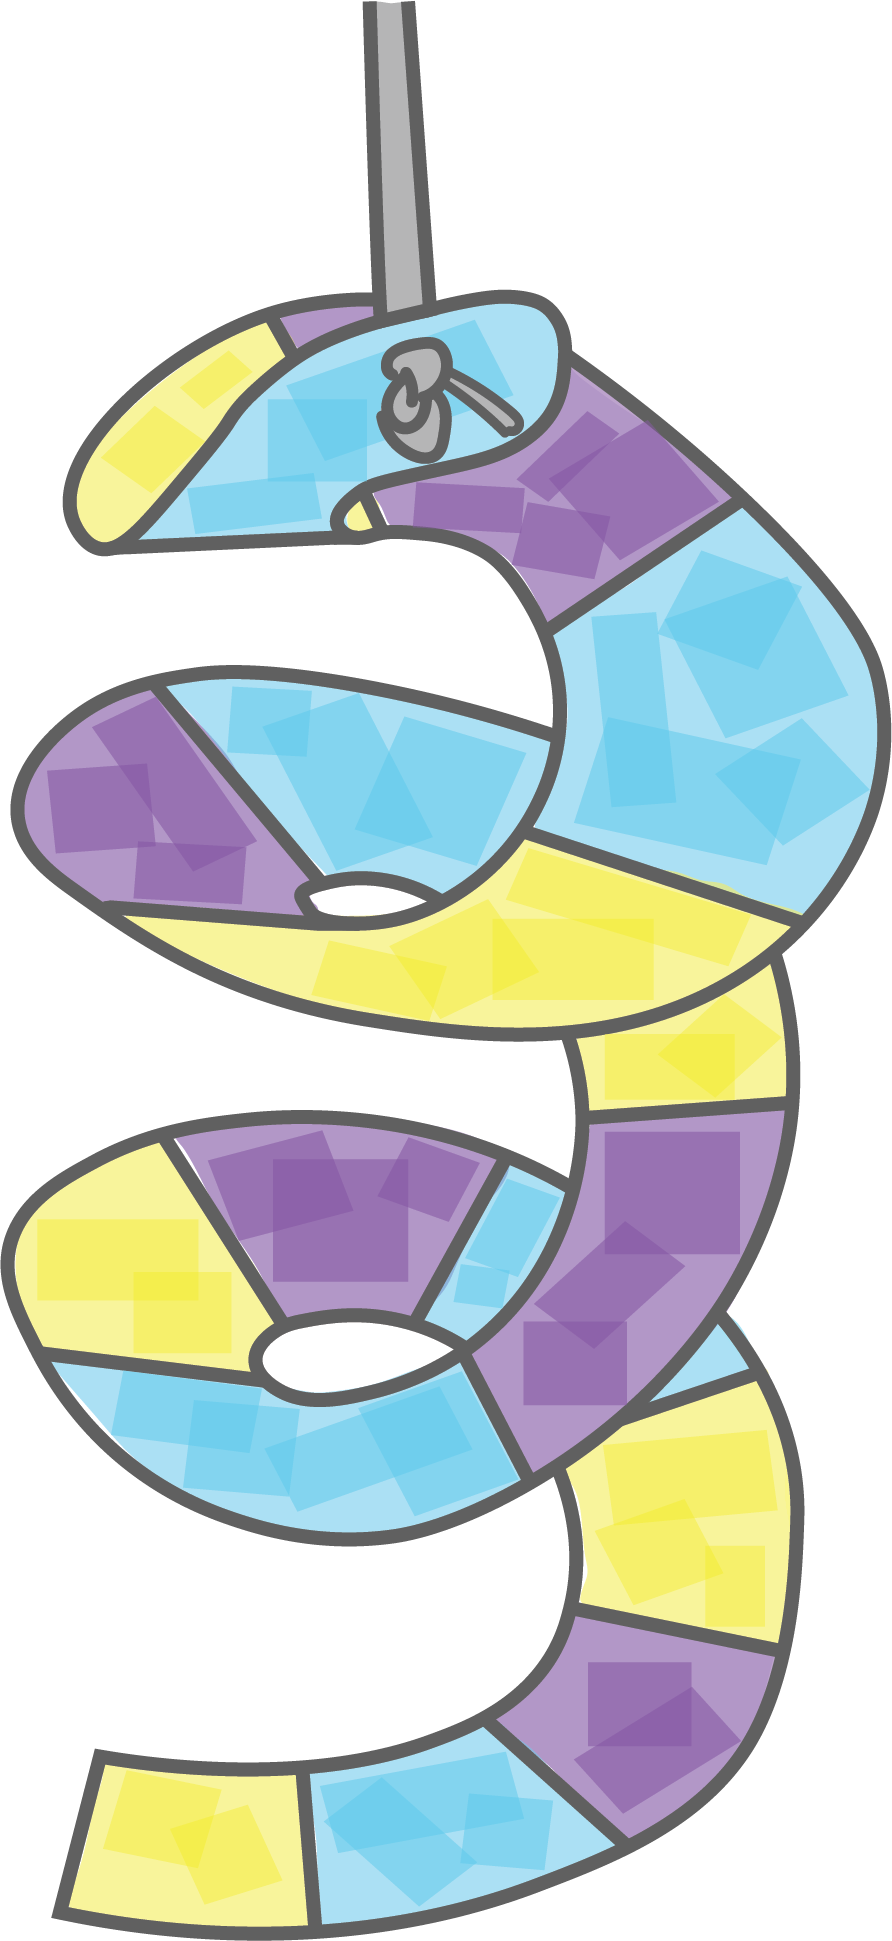 Illustration depicts a spiral sculpture in yellow, blue and purple